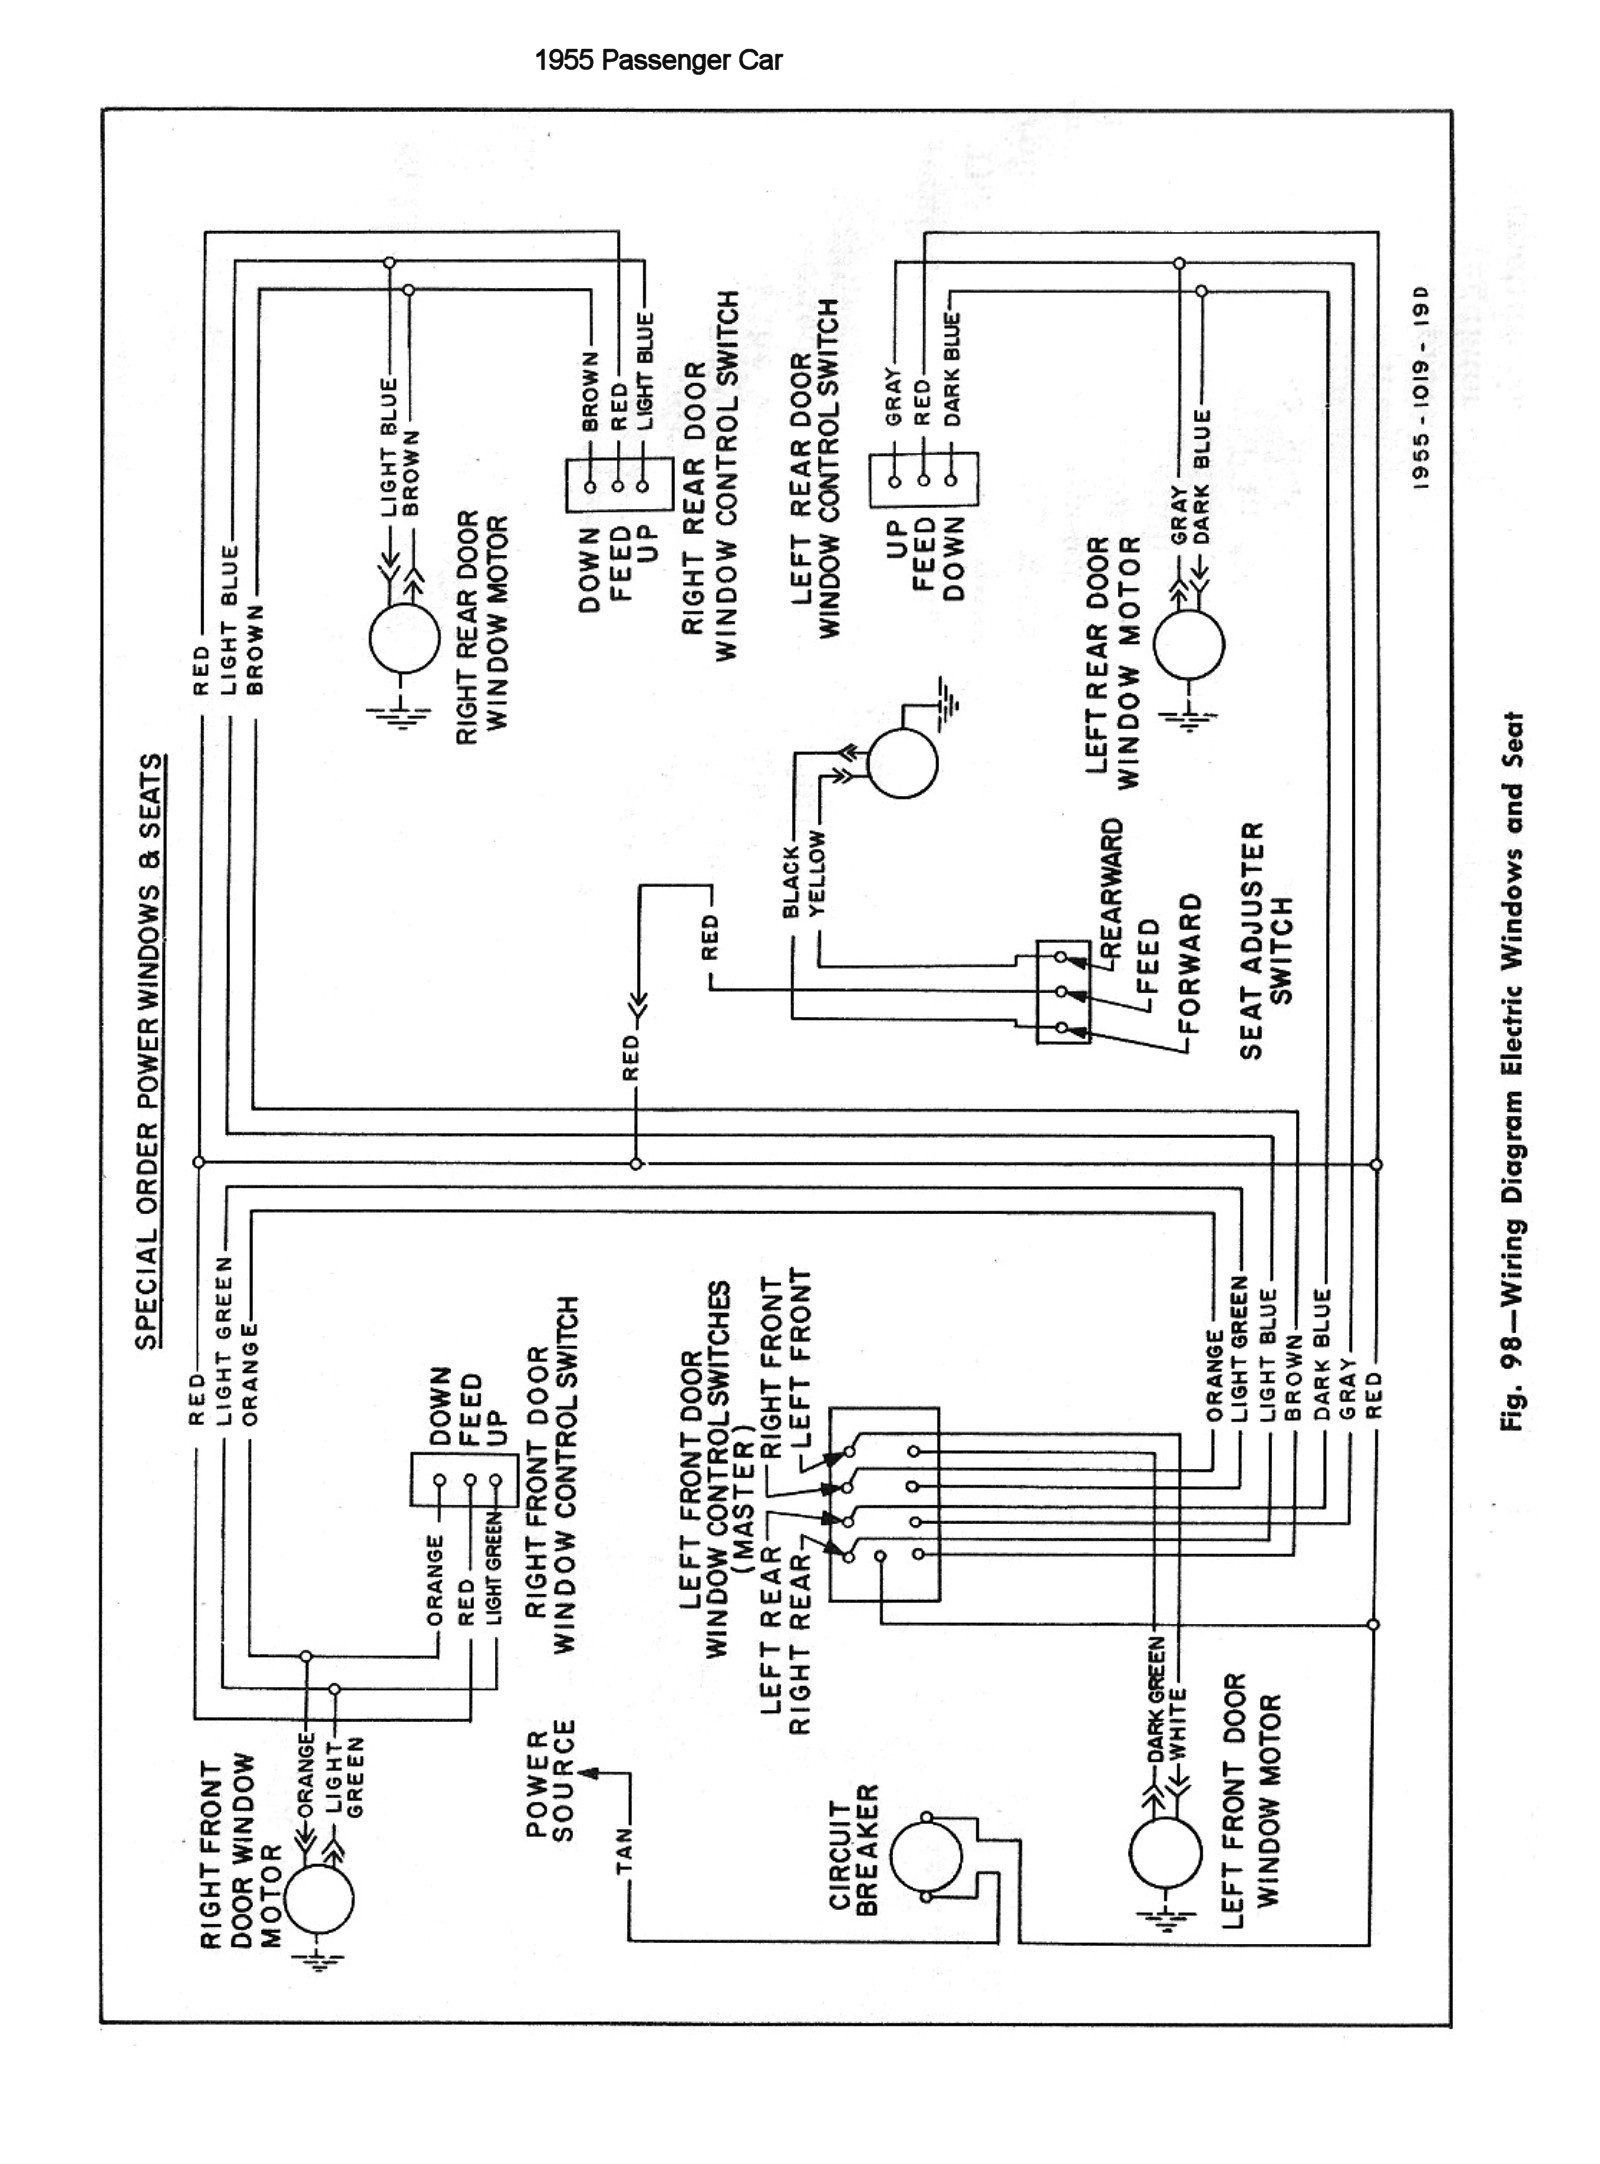 1955 ford turn signal wiring diagram wiring diagram for you 1955 chevy turn signal wiring diagram [ 1600 x 2164 Pixel ]